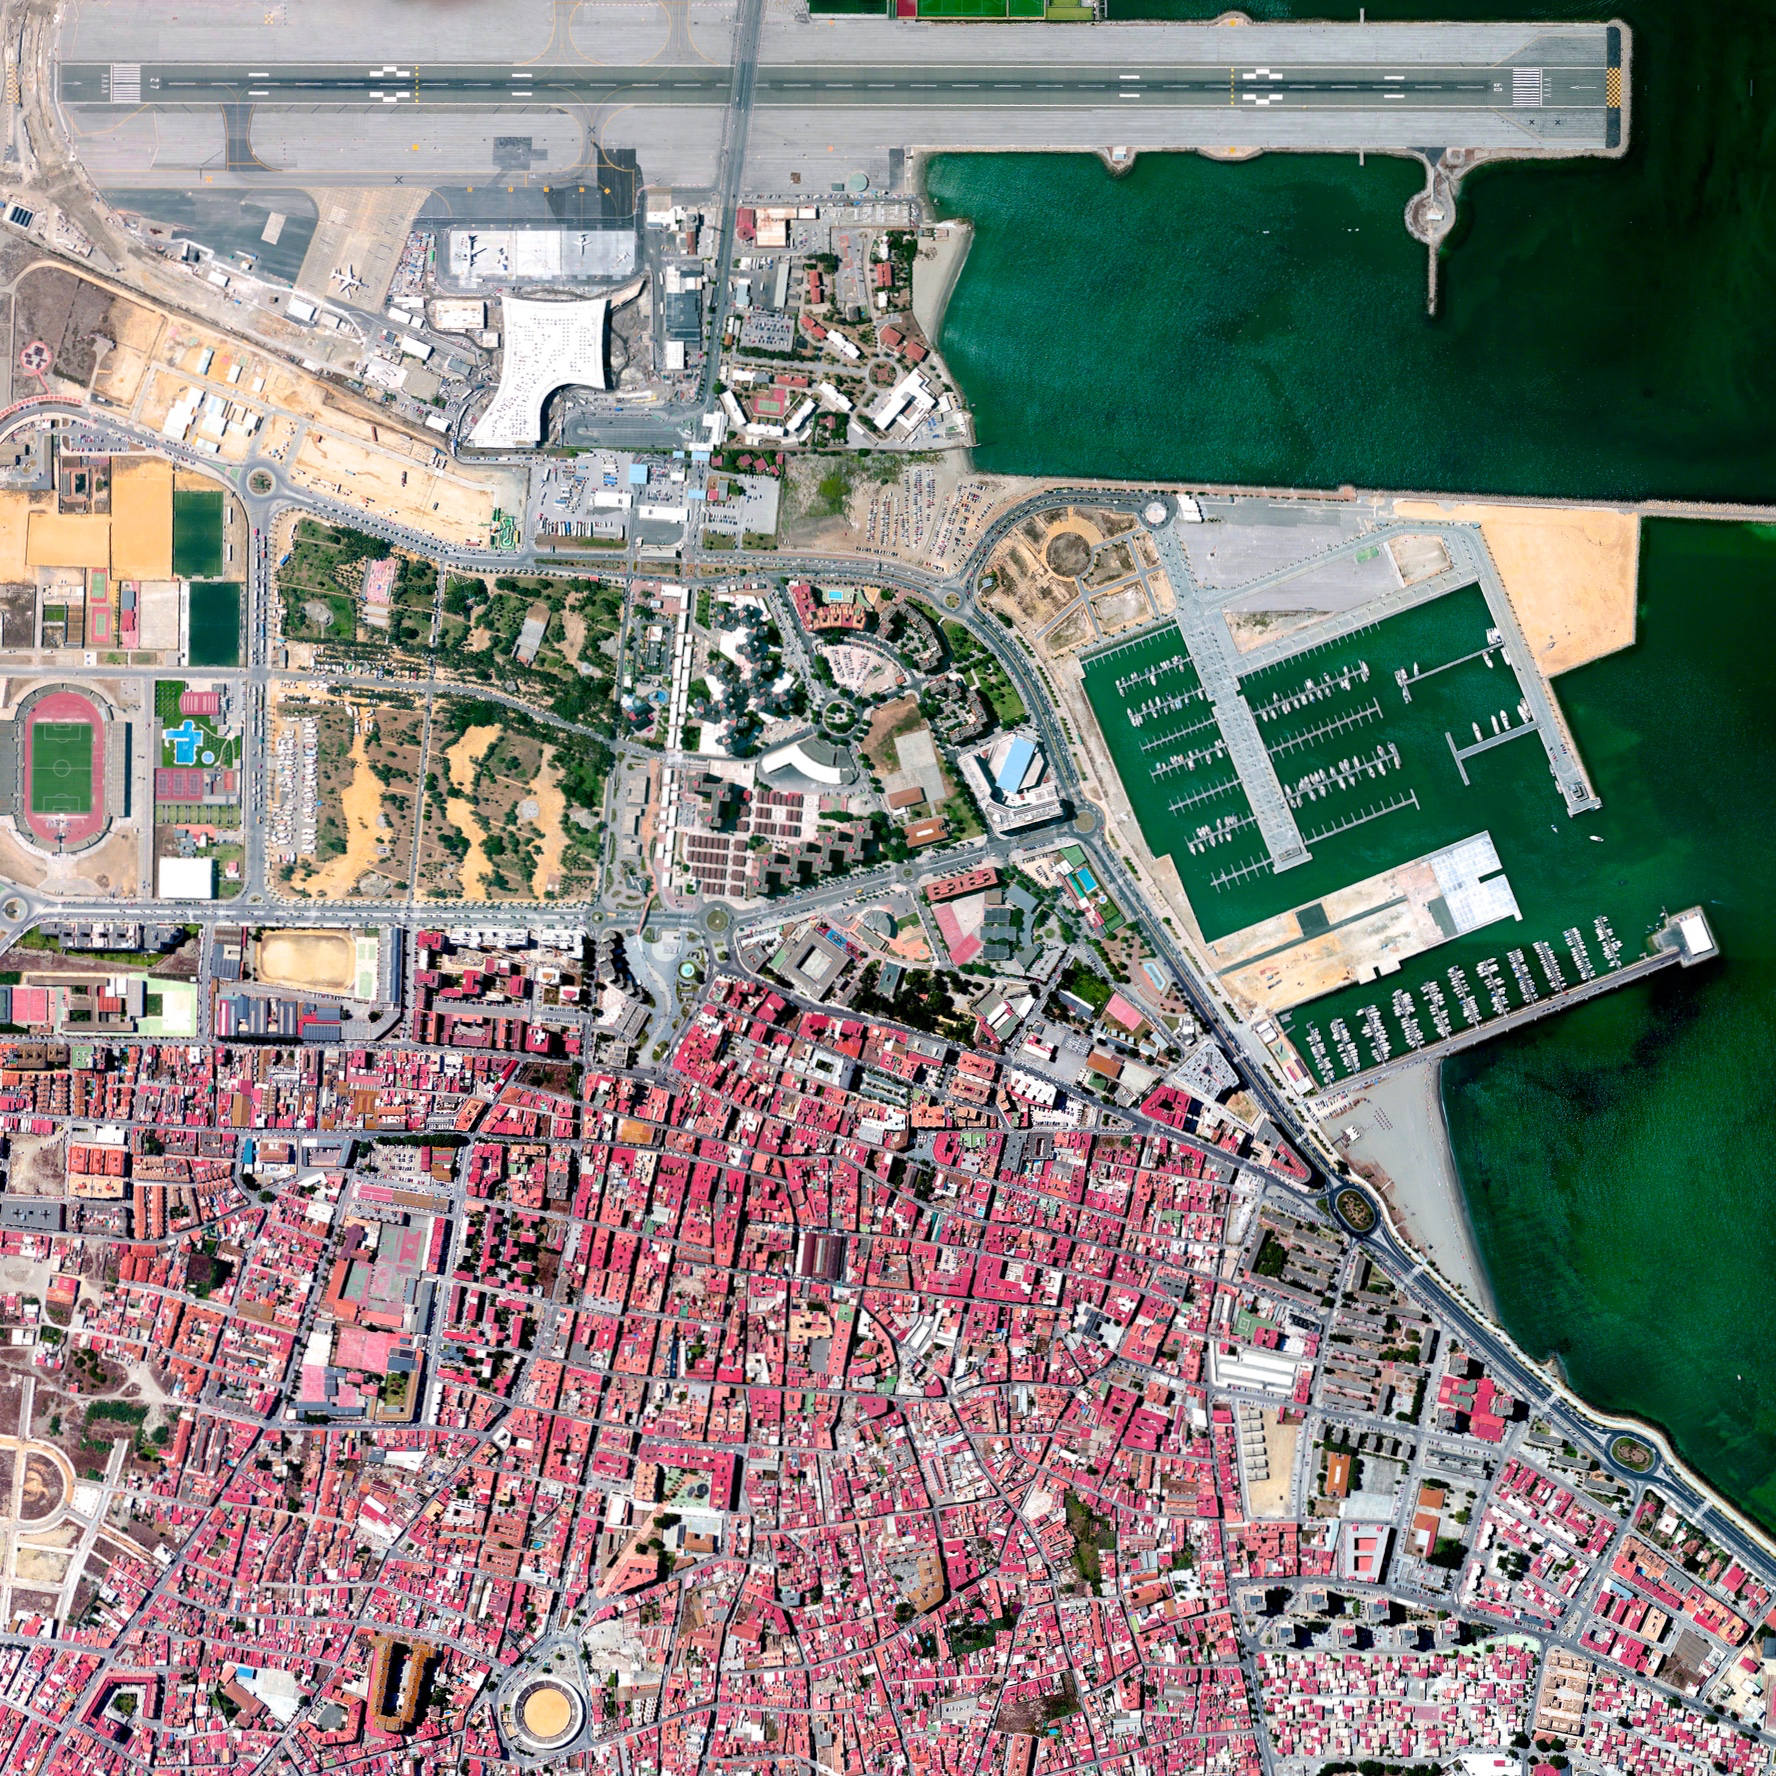 7/27/2015   Gibraltar International Airport   Gibraltar  36°09′04″N 005°20′59″W    Check out this zoomed-in look at  one of the prints  that was added to our store yesterday. The Overview captures the Gibraltar International Airport, serving the British overseas territory and neighboring areas of southern Spain. Winston Churchill Avenue - the road to the border with Spain - intersects the airport runway and has to be closed every time a plane lands or departs. To see what else is in the Printshop,  click here !